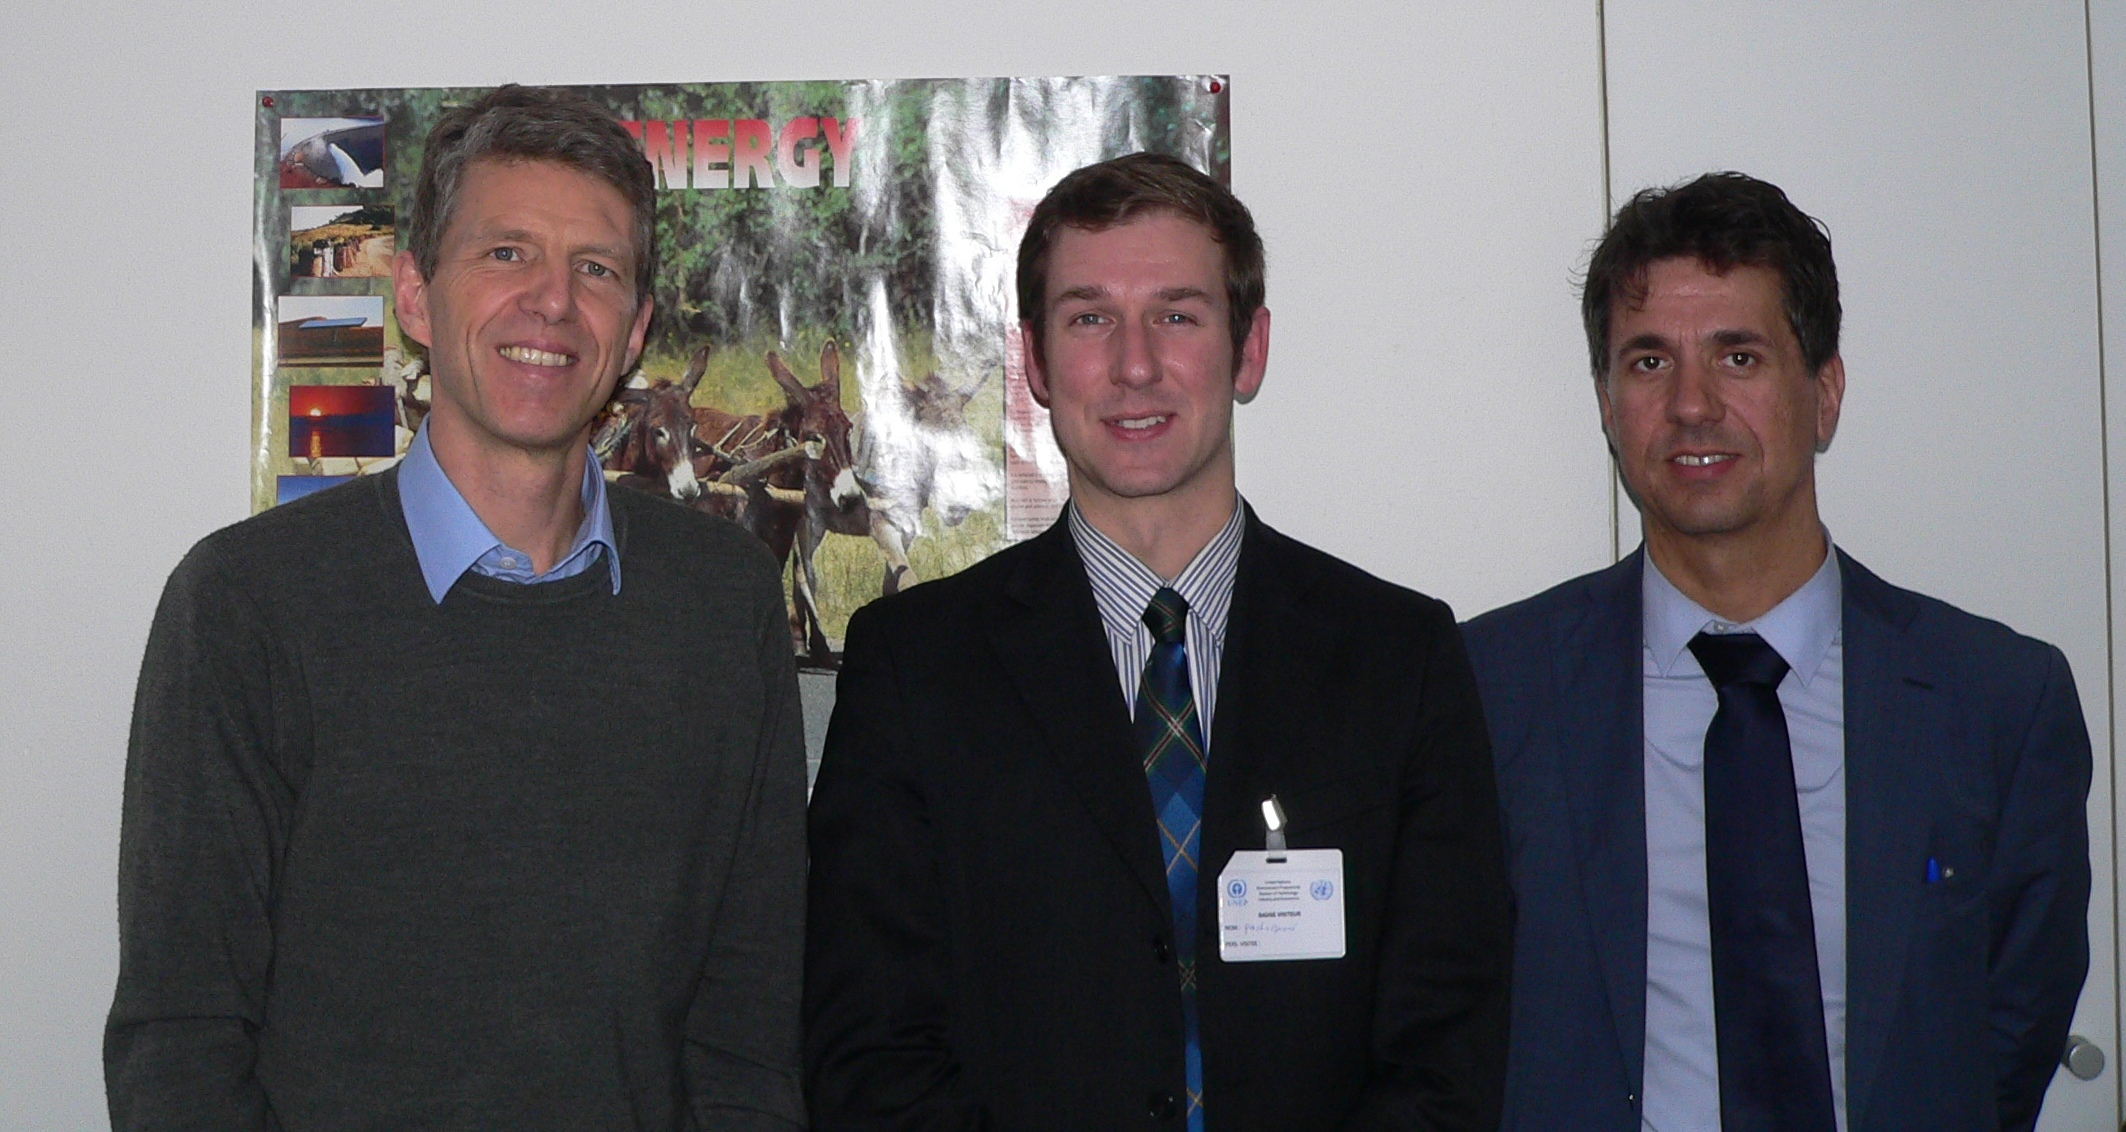 From left: Dean Cooper, United Nations UNEP; Paolo Buoni, European Energy Centre (EEC); Marco Buoni, Centro Studi Galileo (CSG), Vice President AREA.